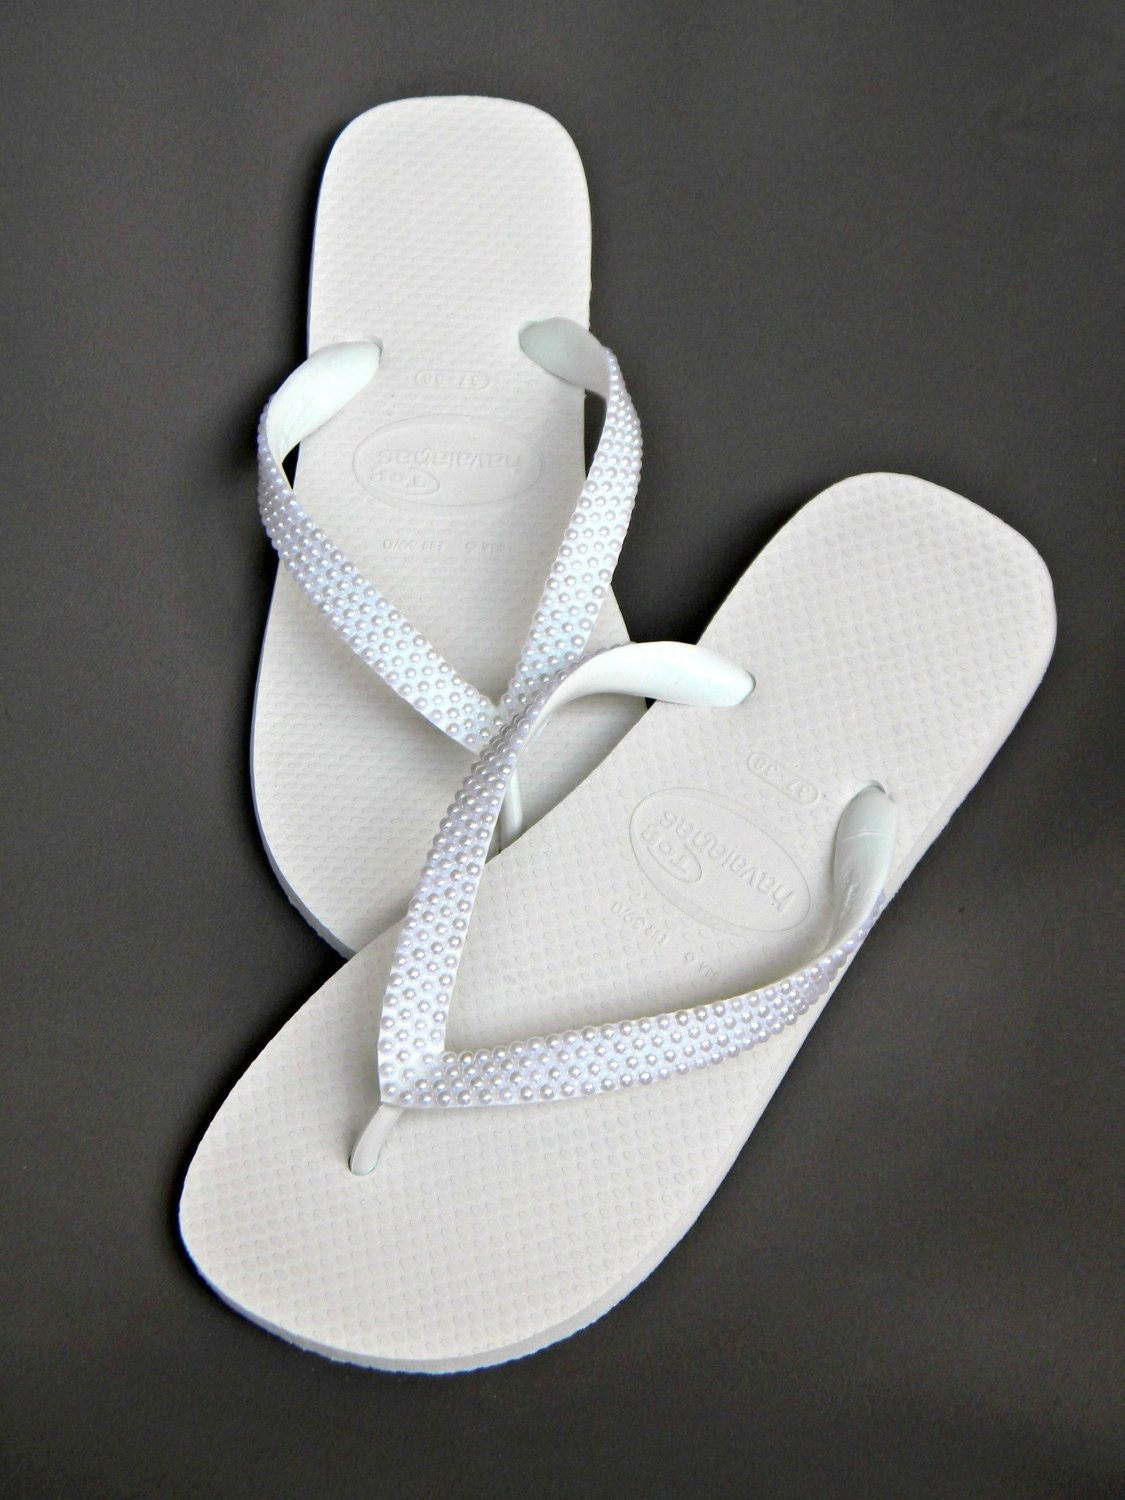 63932d8e0 Custom Havaianas flat Flip Flops w  Pearls or Wedge heel w  Swarovski  Crystal sandal Beach Wedding Shoe Bridal Bridesmaid Flower Girl Thong